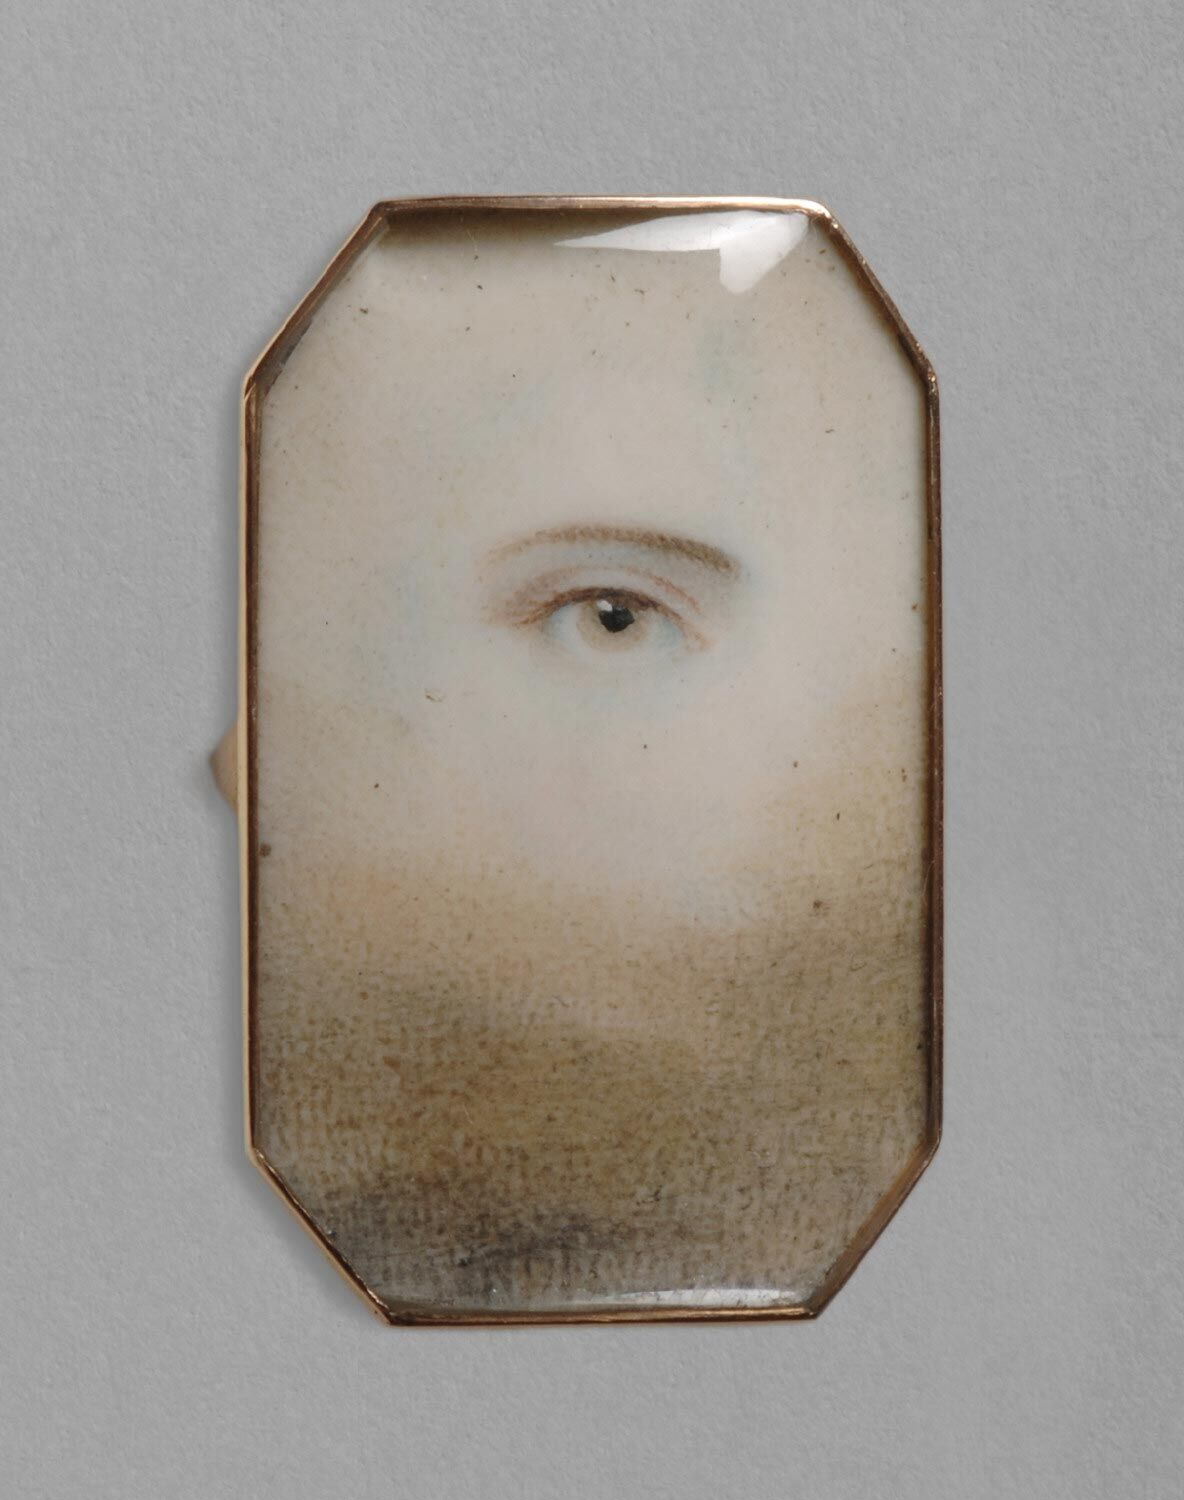 Portrait of a Right Eye (mounted as a ring). Courtesy of the Philadelphia Museum of Art.